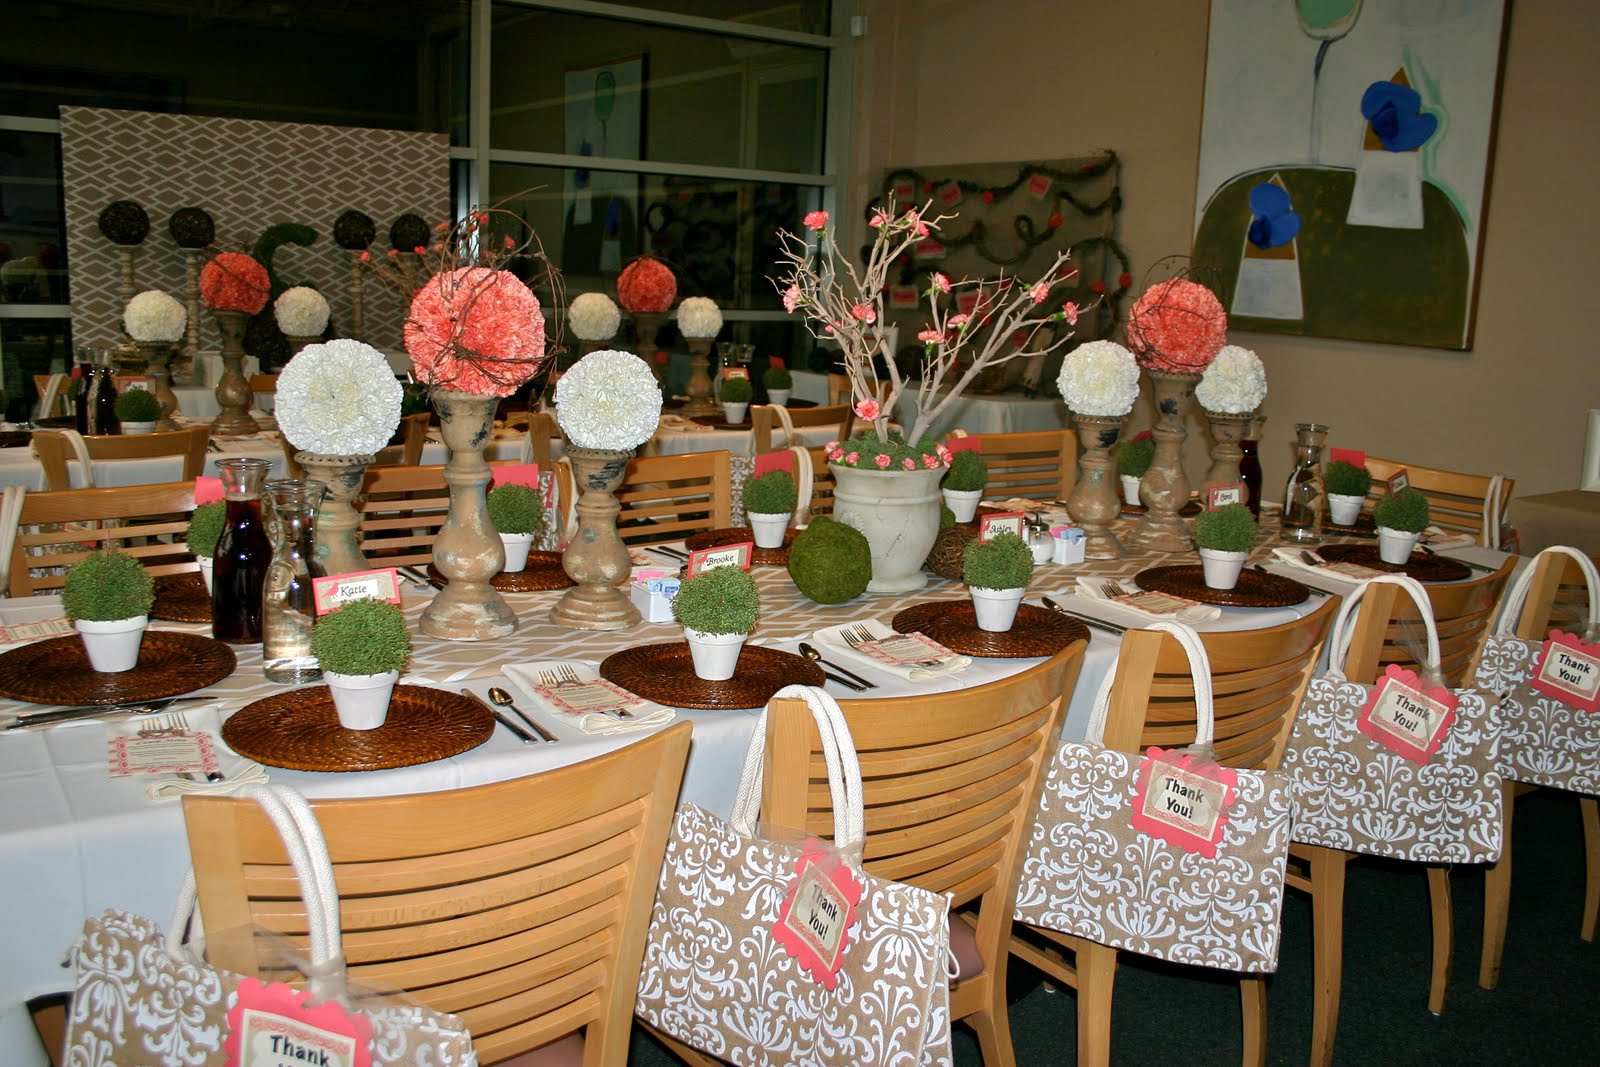 Best ideas about Birthday Decorations For Her . Save or Pin 35 Birthday Table Decorations Ideas for Adults Now.